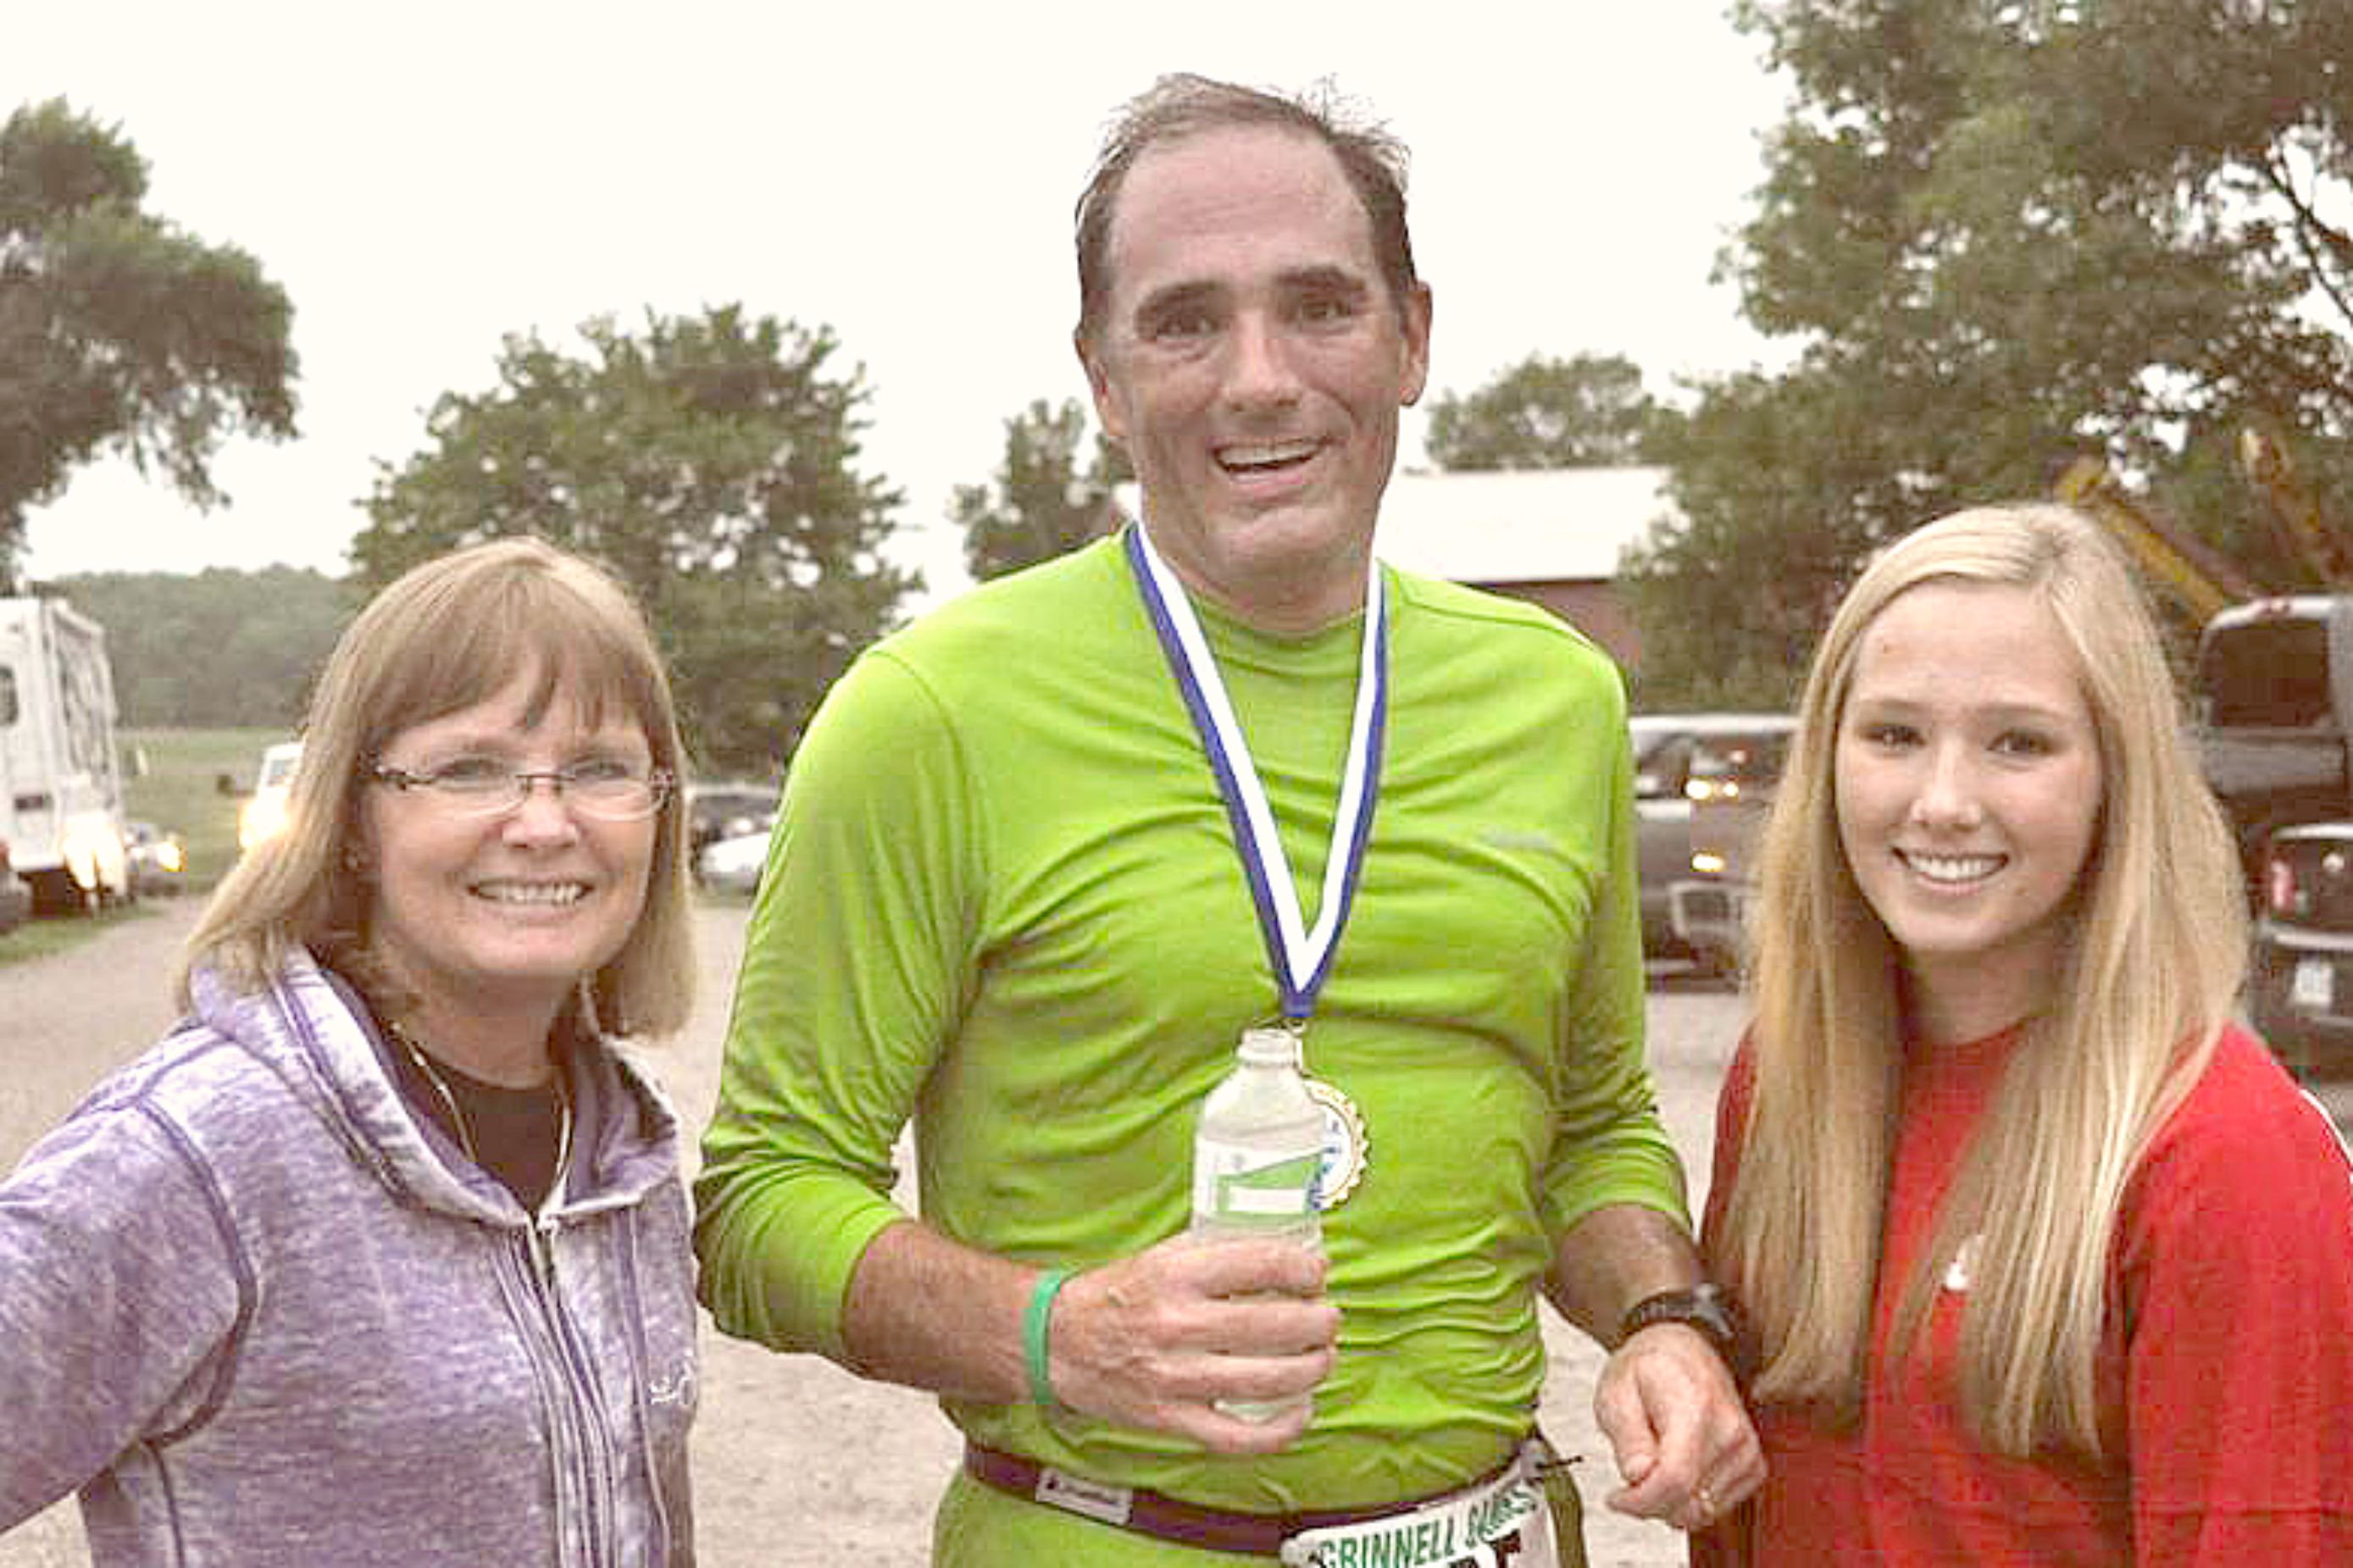 Kim and Austin Jones with Miranda at the Twilight Run (Grinnell Games), 2015